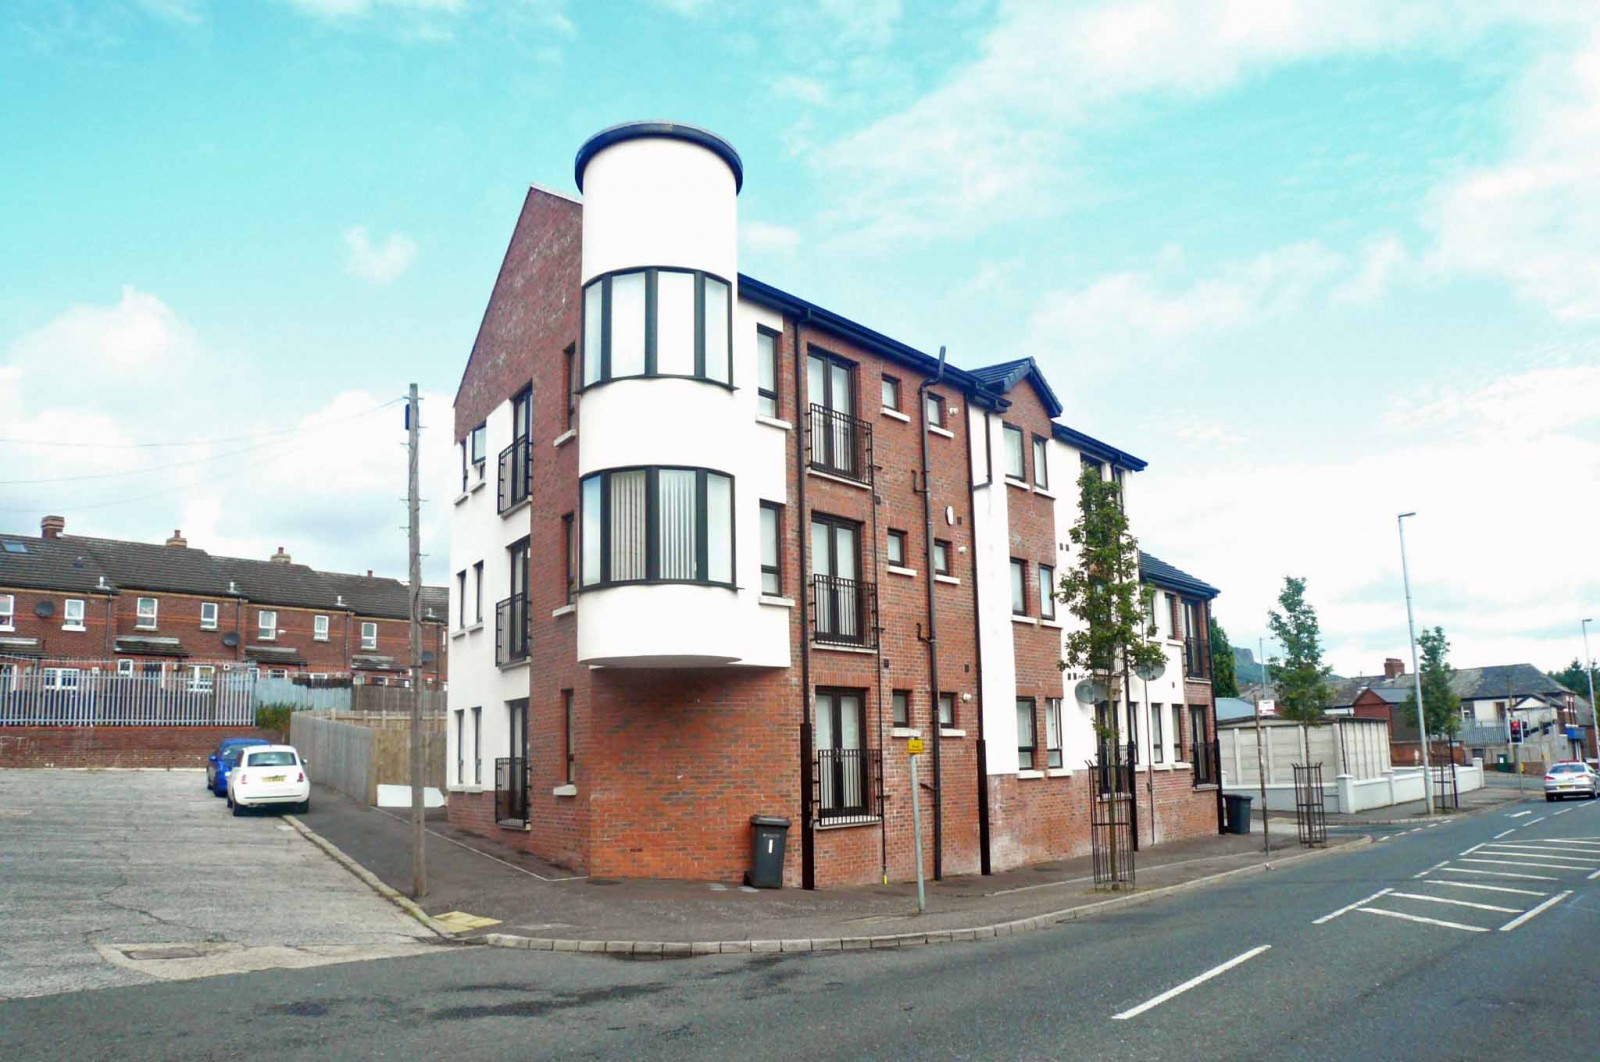 Apt 4 Church Rise, 1 Cosgrave Street, North Belfast, BT15 2JU